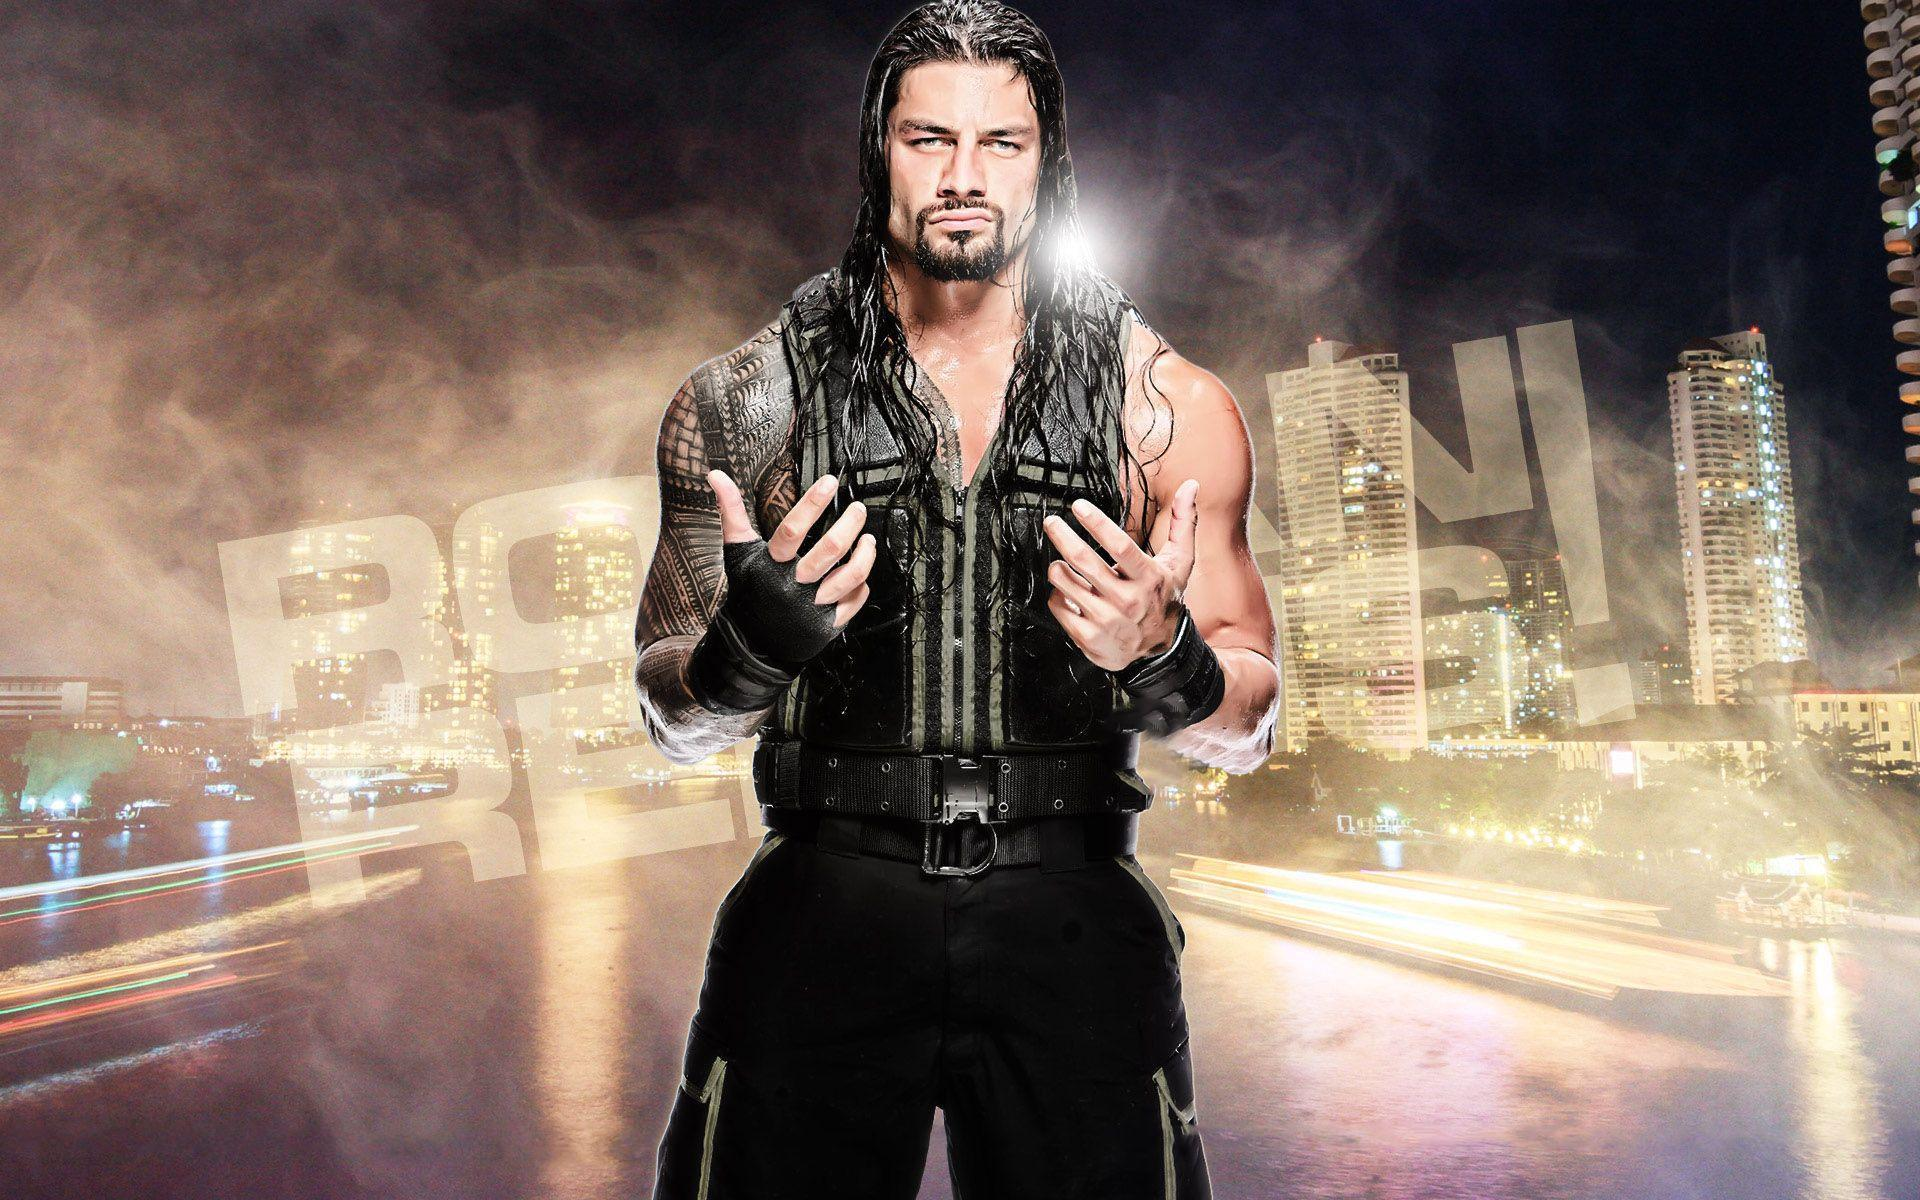 Roman Reigns Latest HD Wallpaper & Images